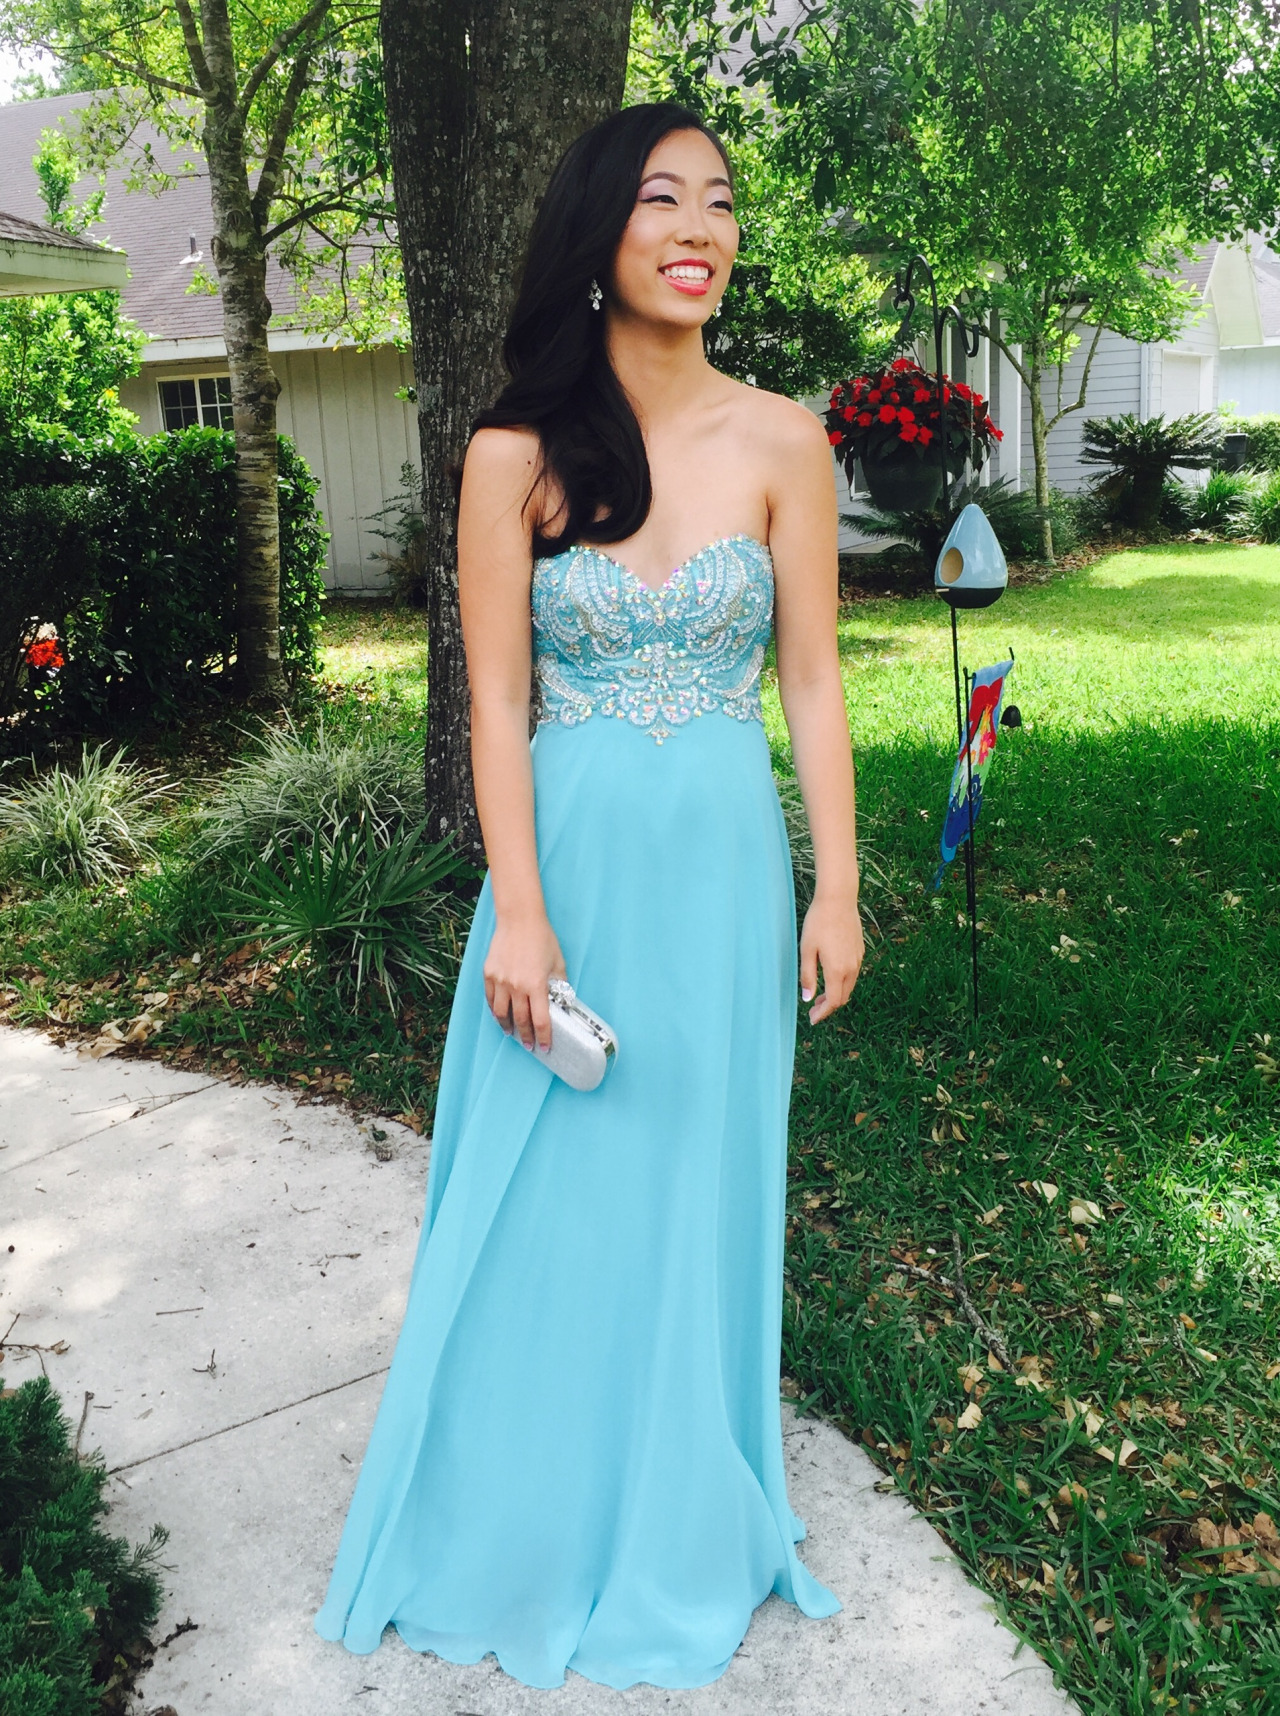 2017 Custom Made High Blue Chiffon Quality Prom Dress,Chiffon Prom Dress,Beading Prom Dress,Sweetheart Bridesmaid Dress, Charming Prom Dress